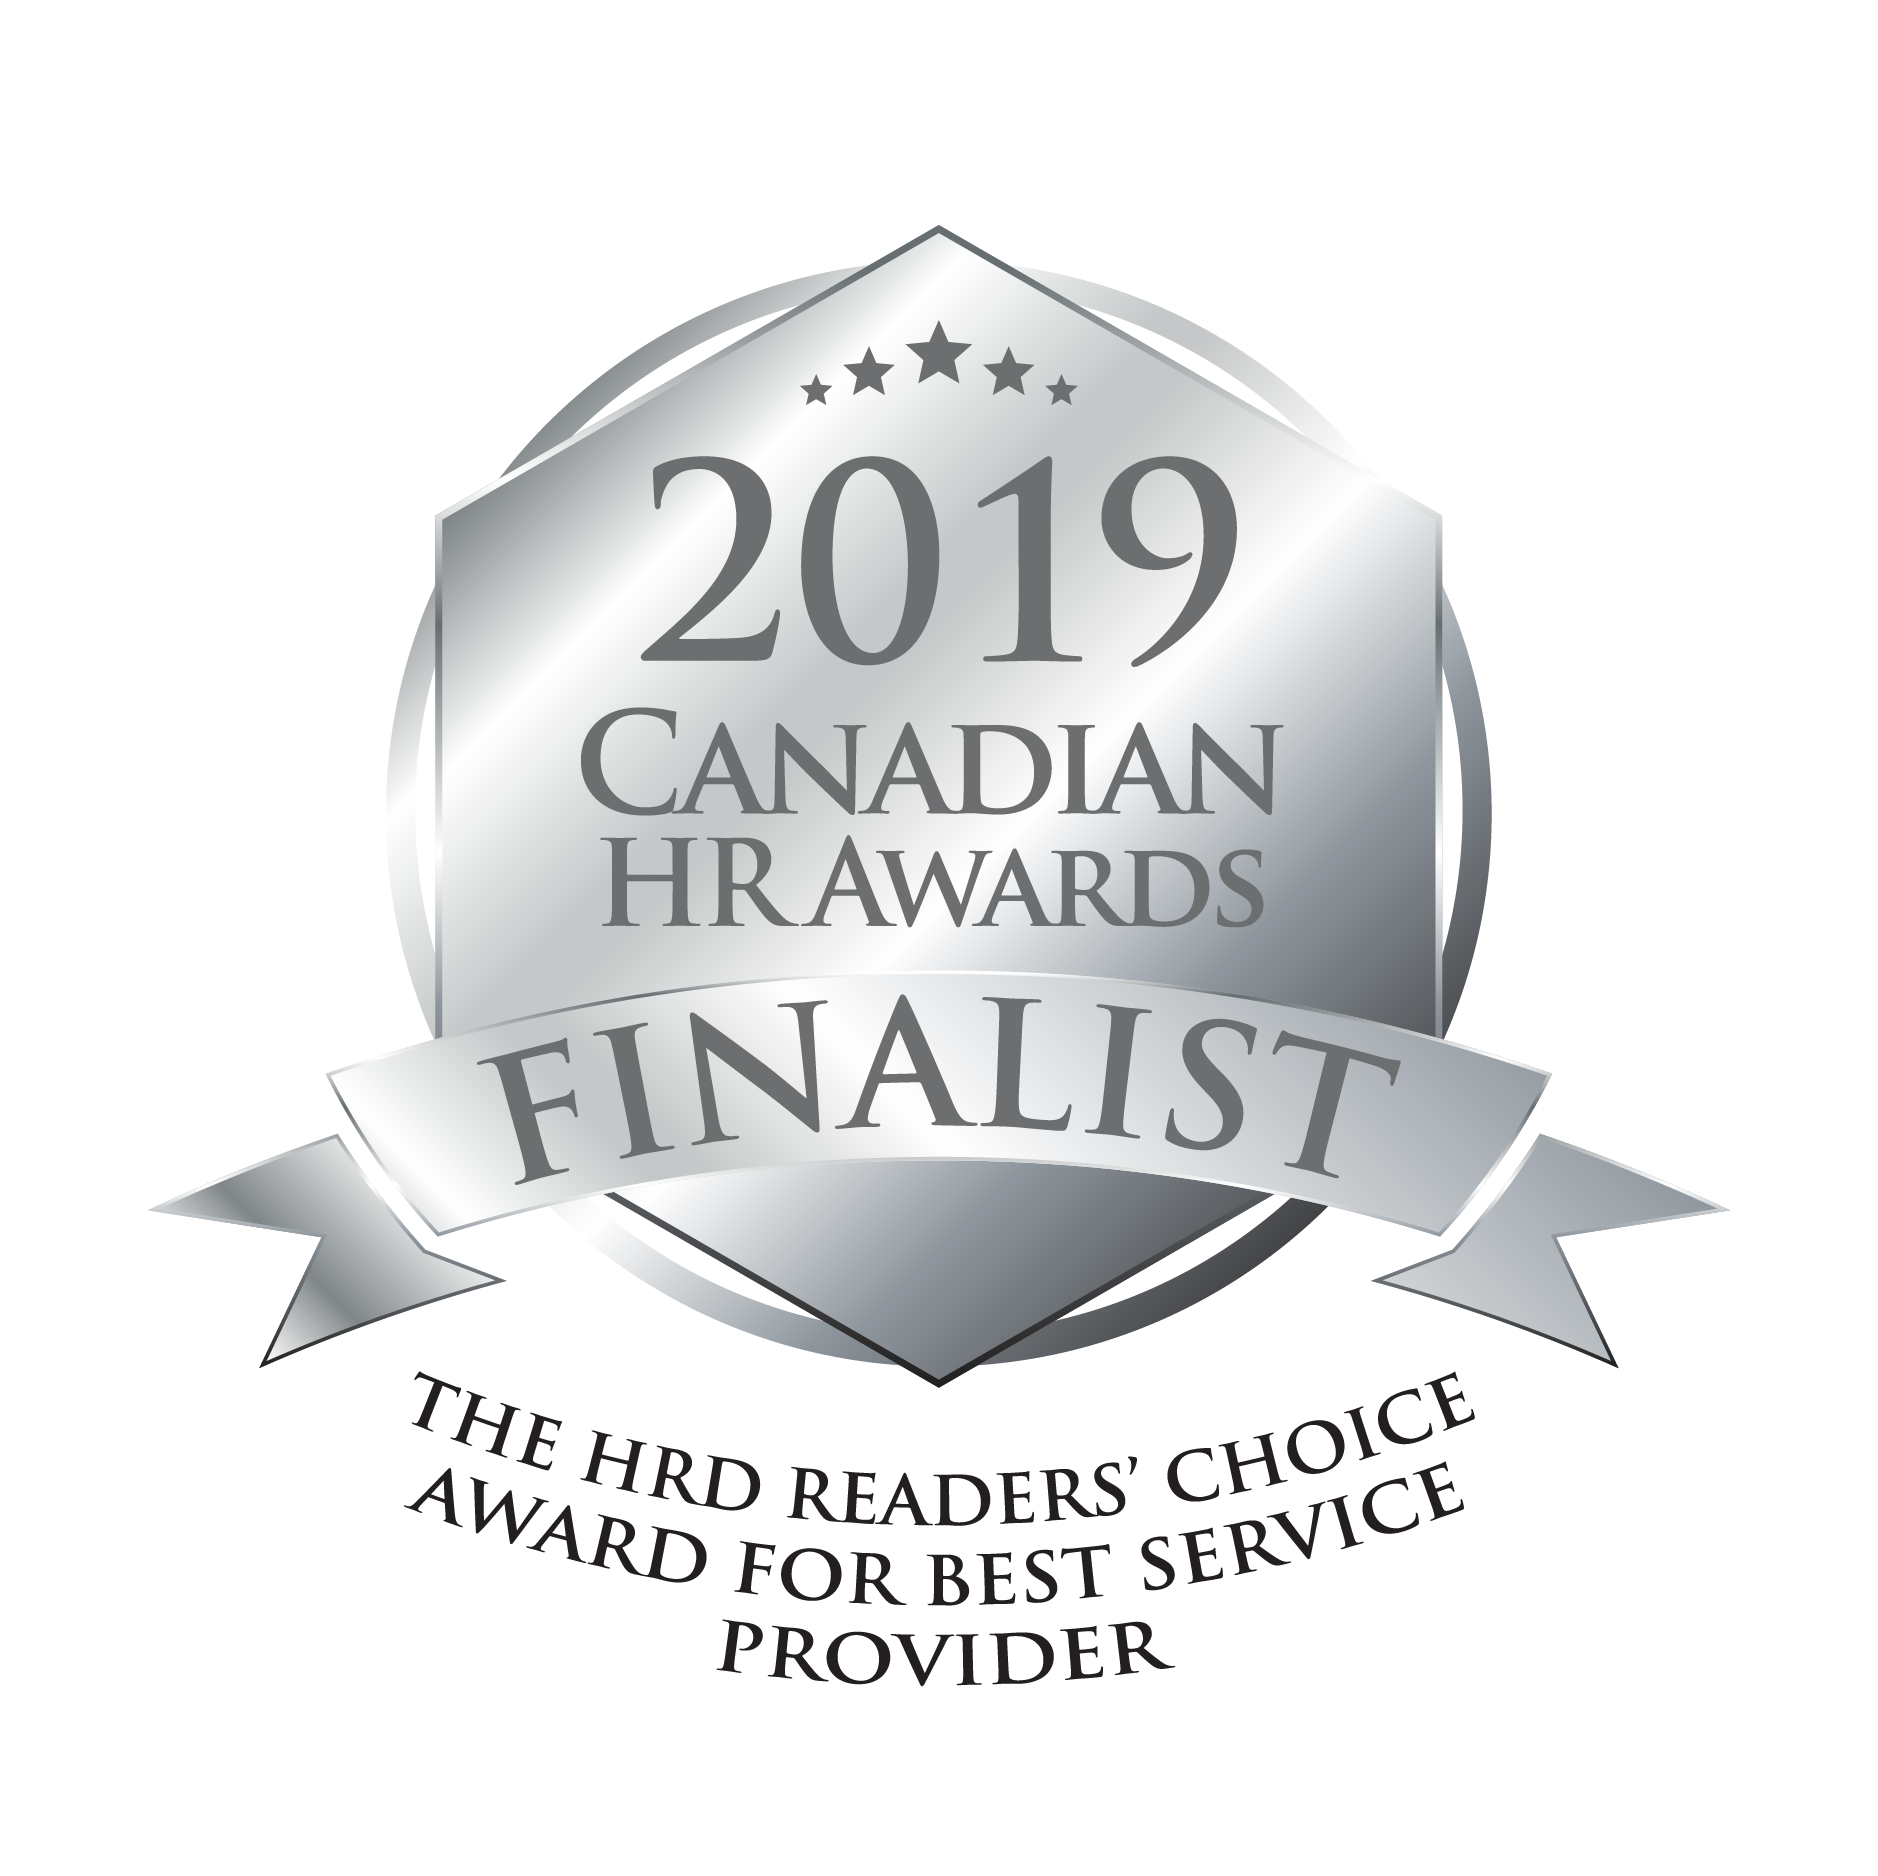 2019 Canadian HR Awards Finalist